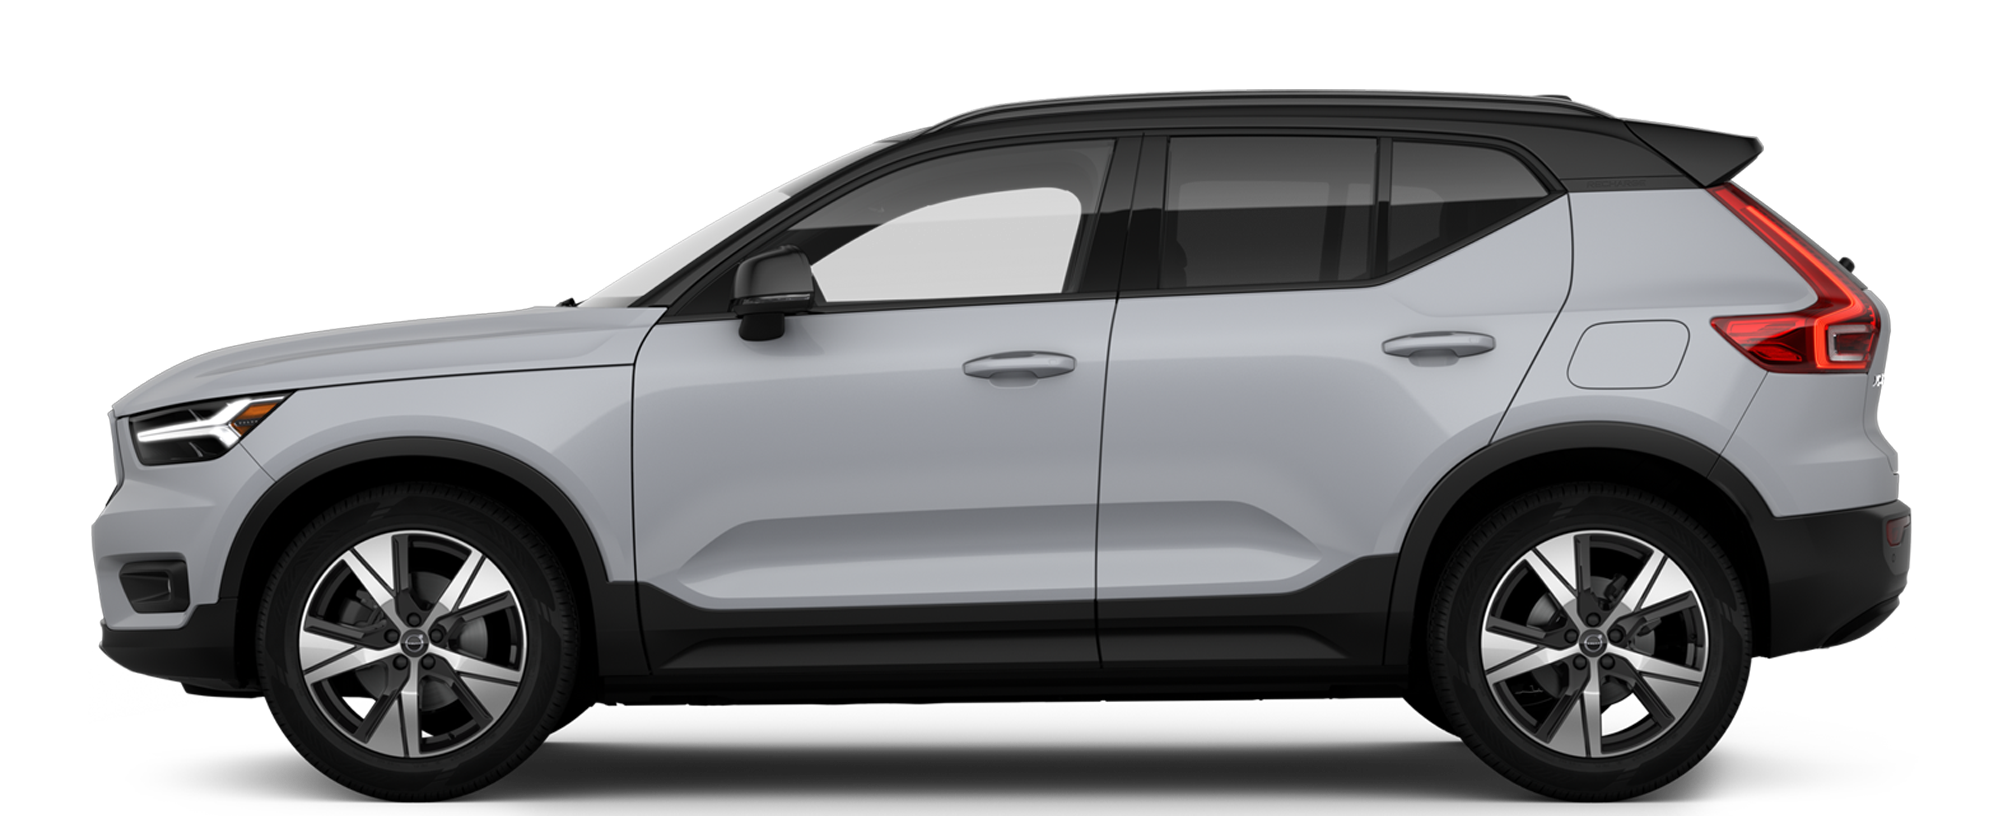 2021 volvo xc40 recharge pure electric suv digital